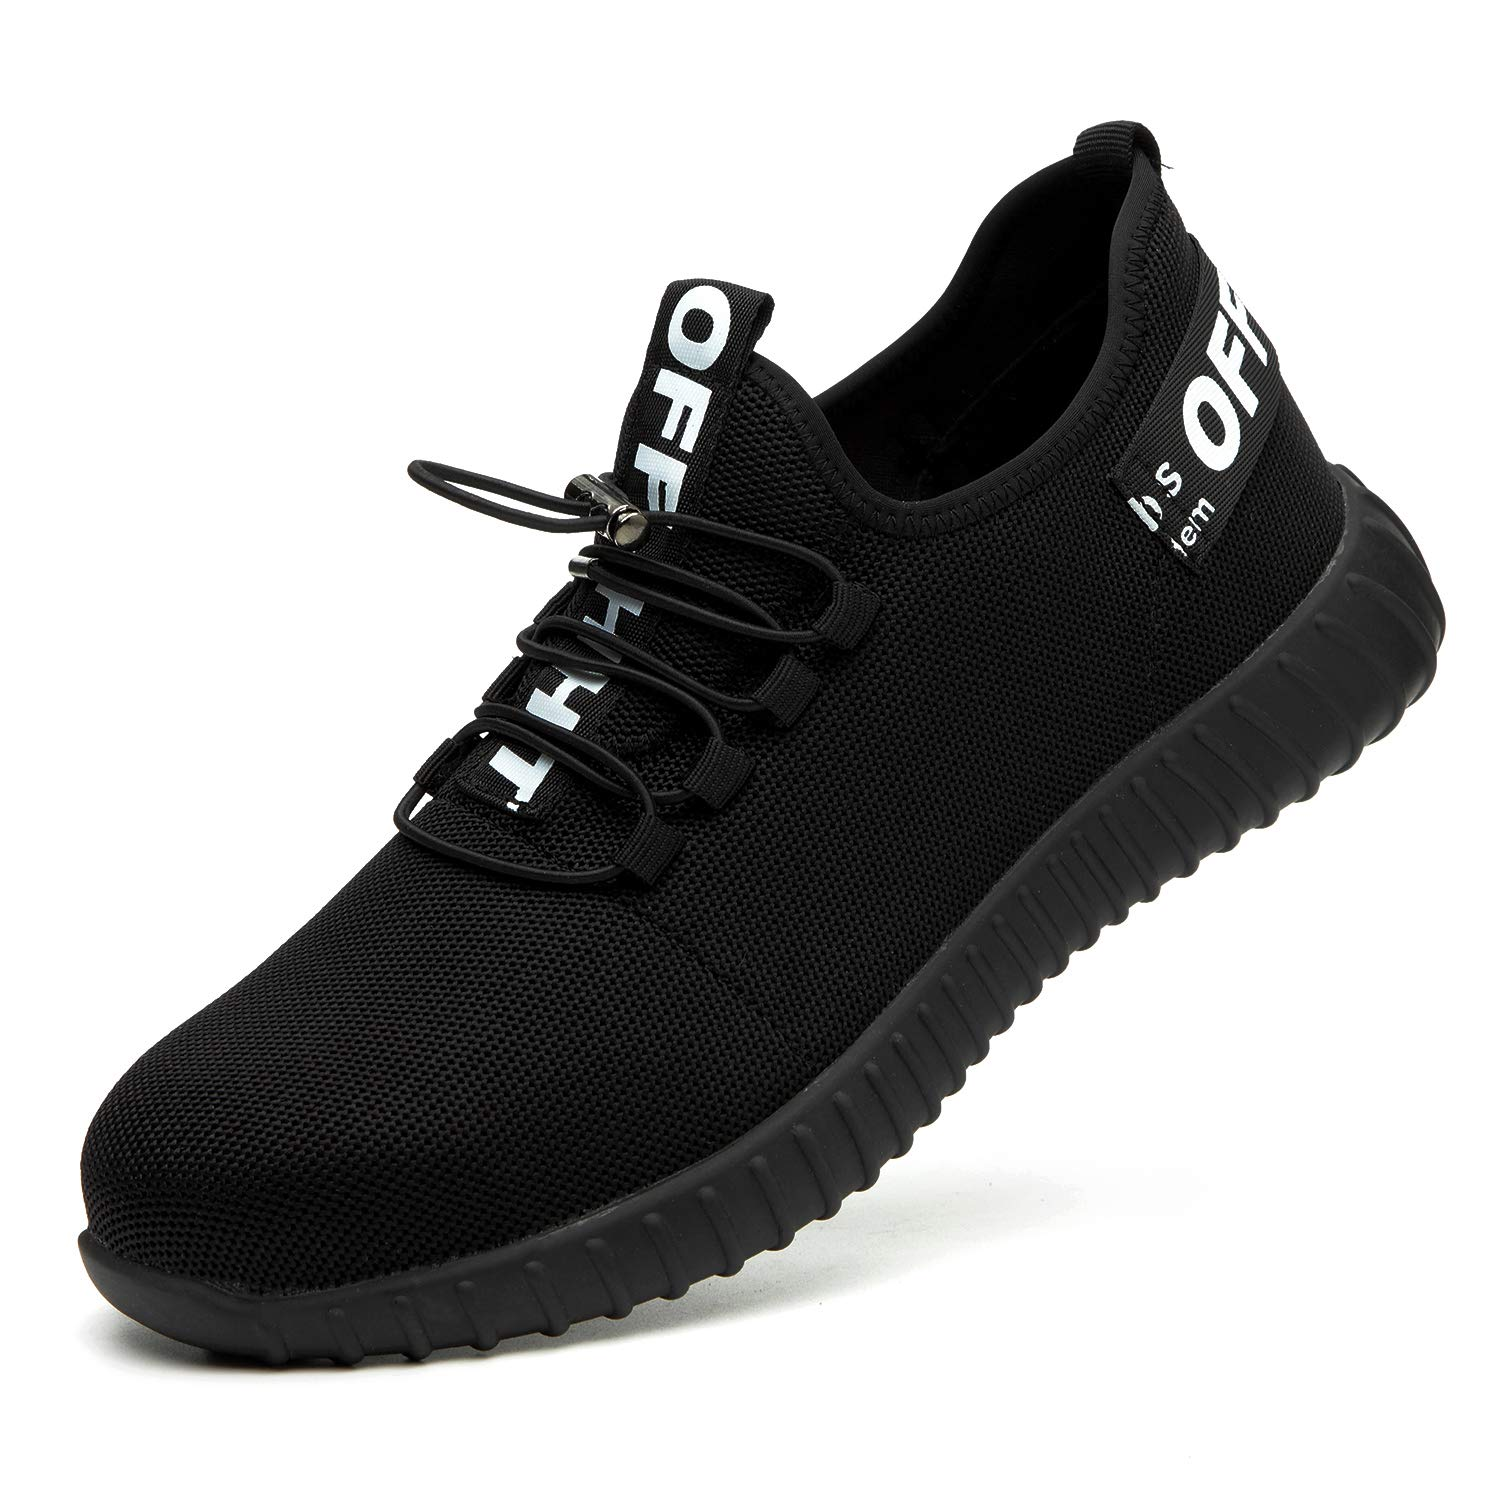 ORISTACO Steel Toe Safety Shoes for Mens, Work Shoes Lightweight Comfort Slip Resistant Industrial Construction Sneakers